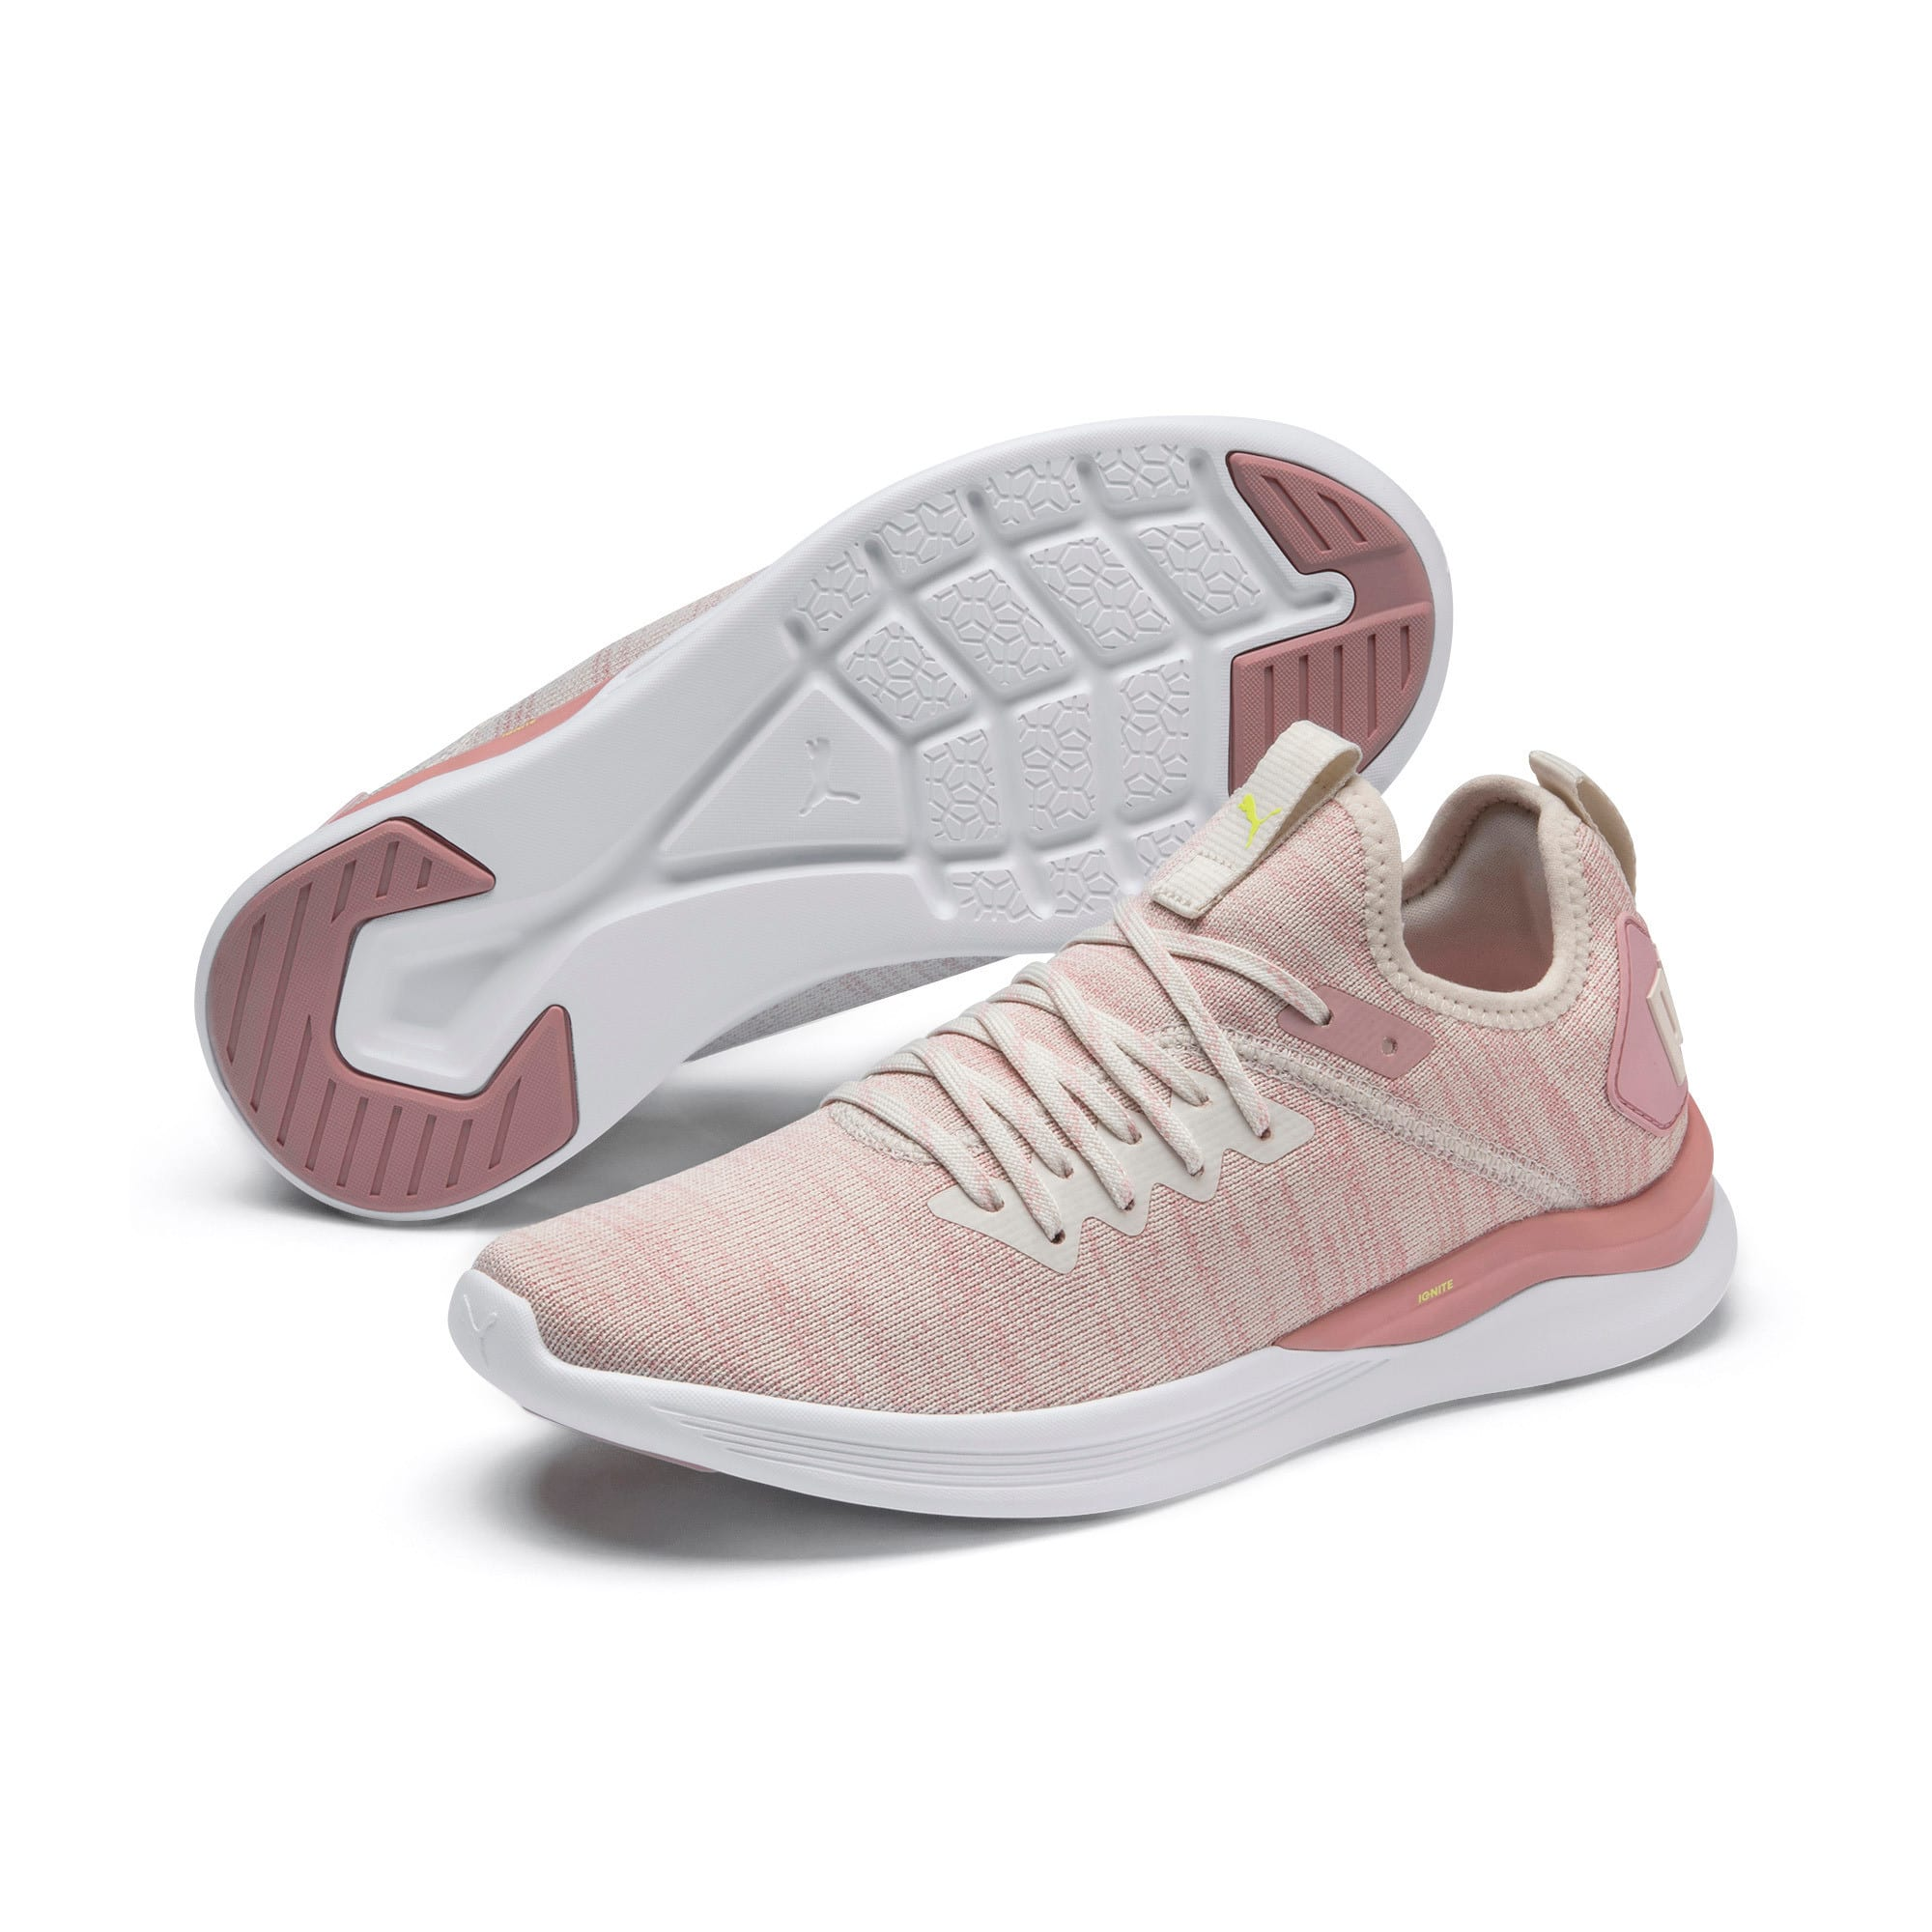 Thumbnail 3 of IGNITE Flash evoKNIT Women's Running Shoes, Pastel Parchment-Bridal Rose, medium